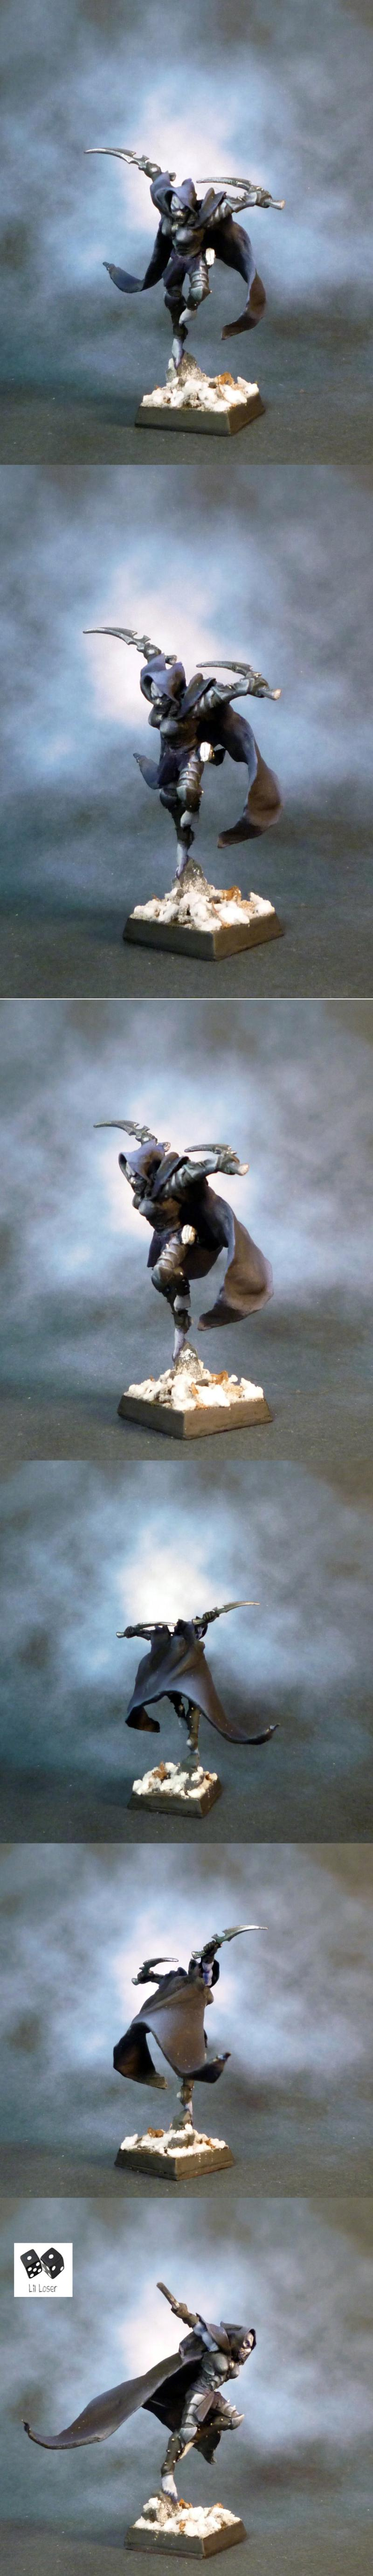 Assassin, Cloak, Conversion, Dark Eldar, Dark Elves, Naggarond, Naggaroth, Non-Metallic Metal